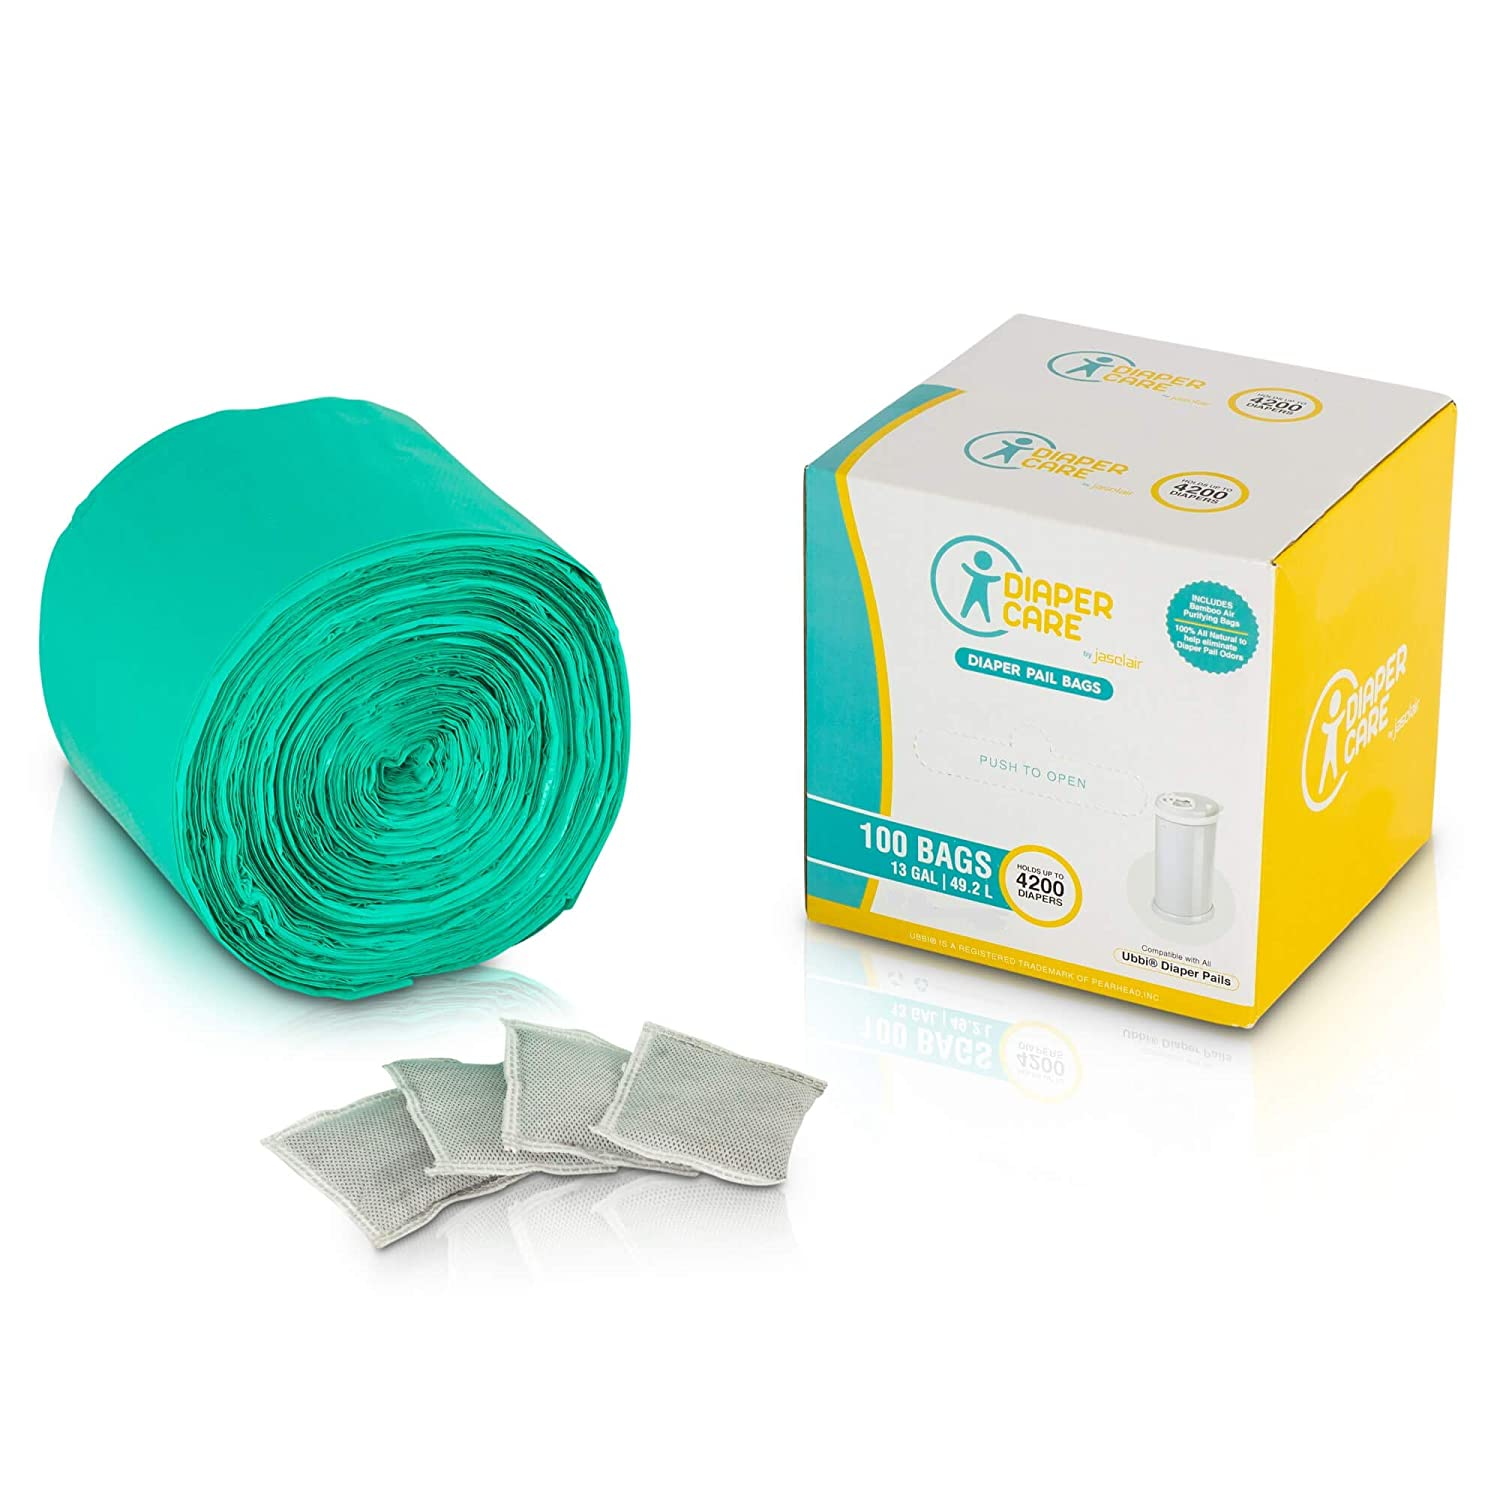 Diaper Pail Bags Compatible with Ubbi Baby Diaper Pails – (100 Count) – Plastic Garbage Refill Liners for Use with Most Home Garbage Trash Disposal Bins – Bonus 4 Bamboo Odor Eliminator Bags